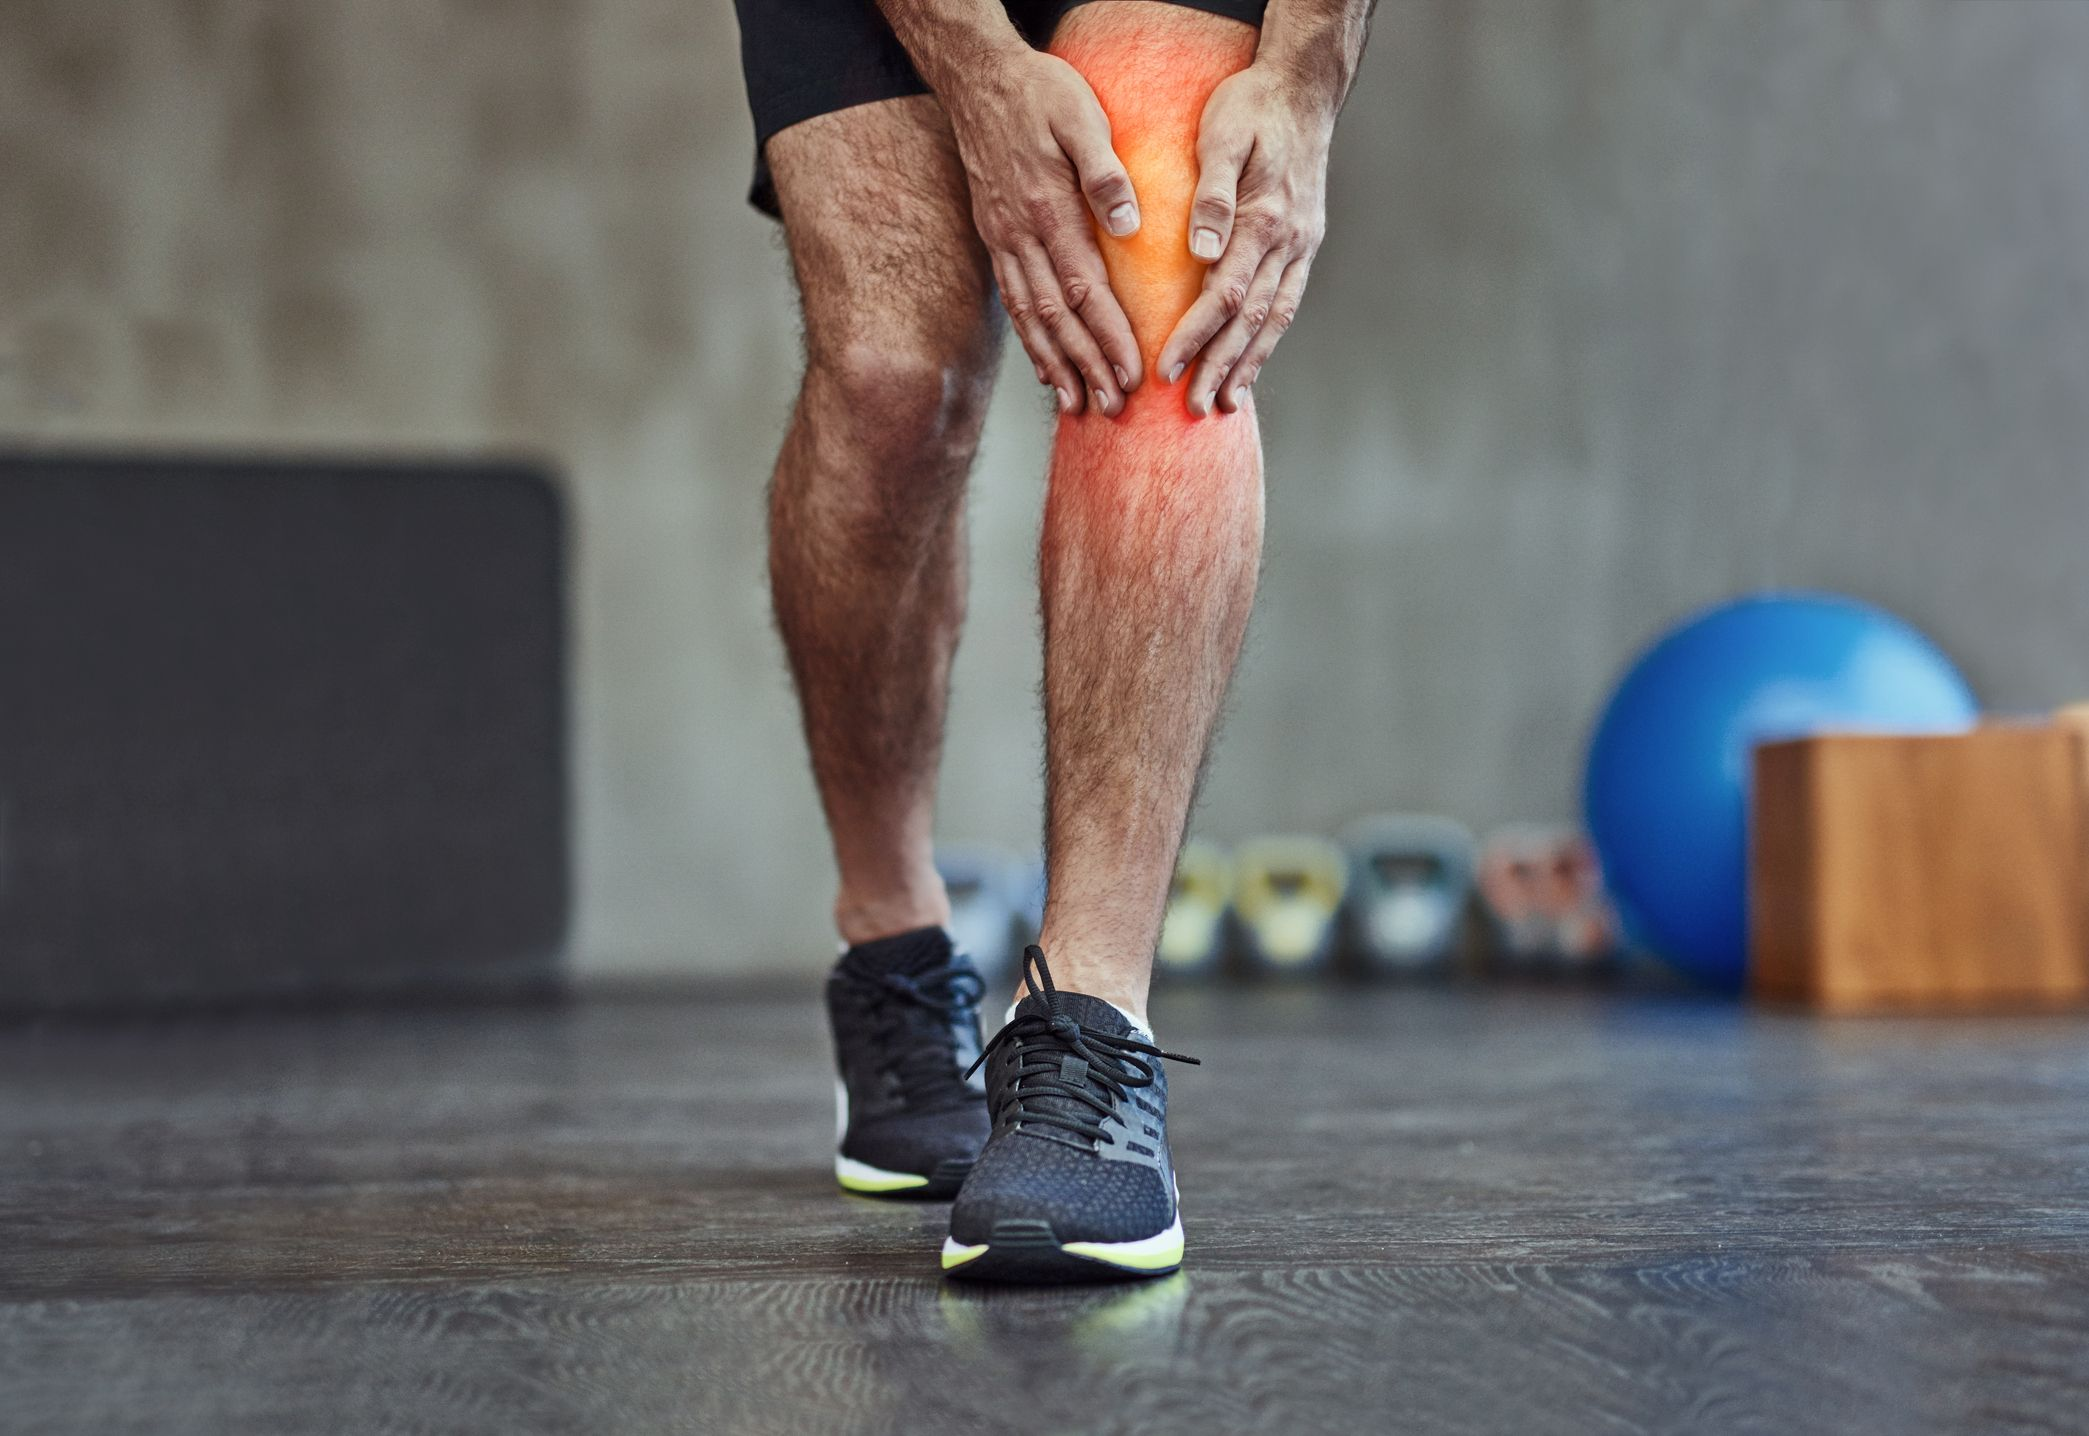 How to Take the Load Off Your Sore Knees